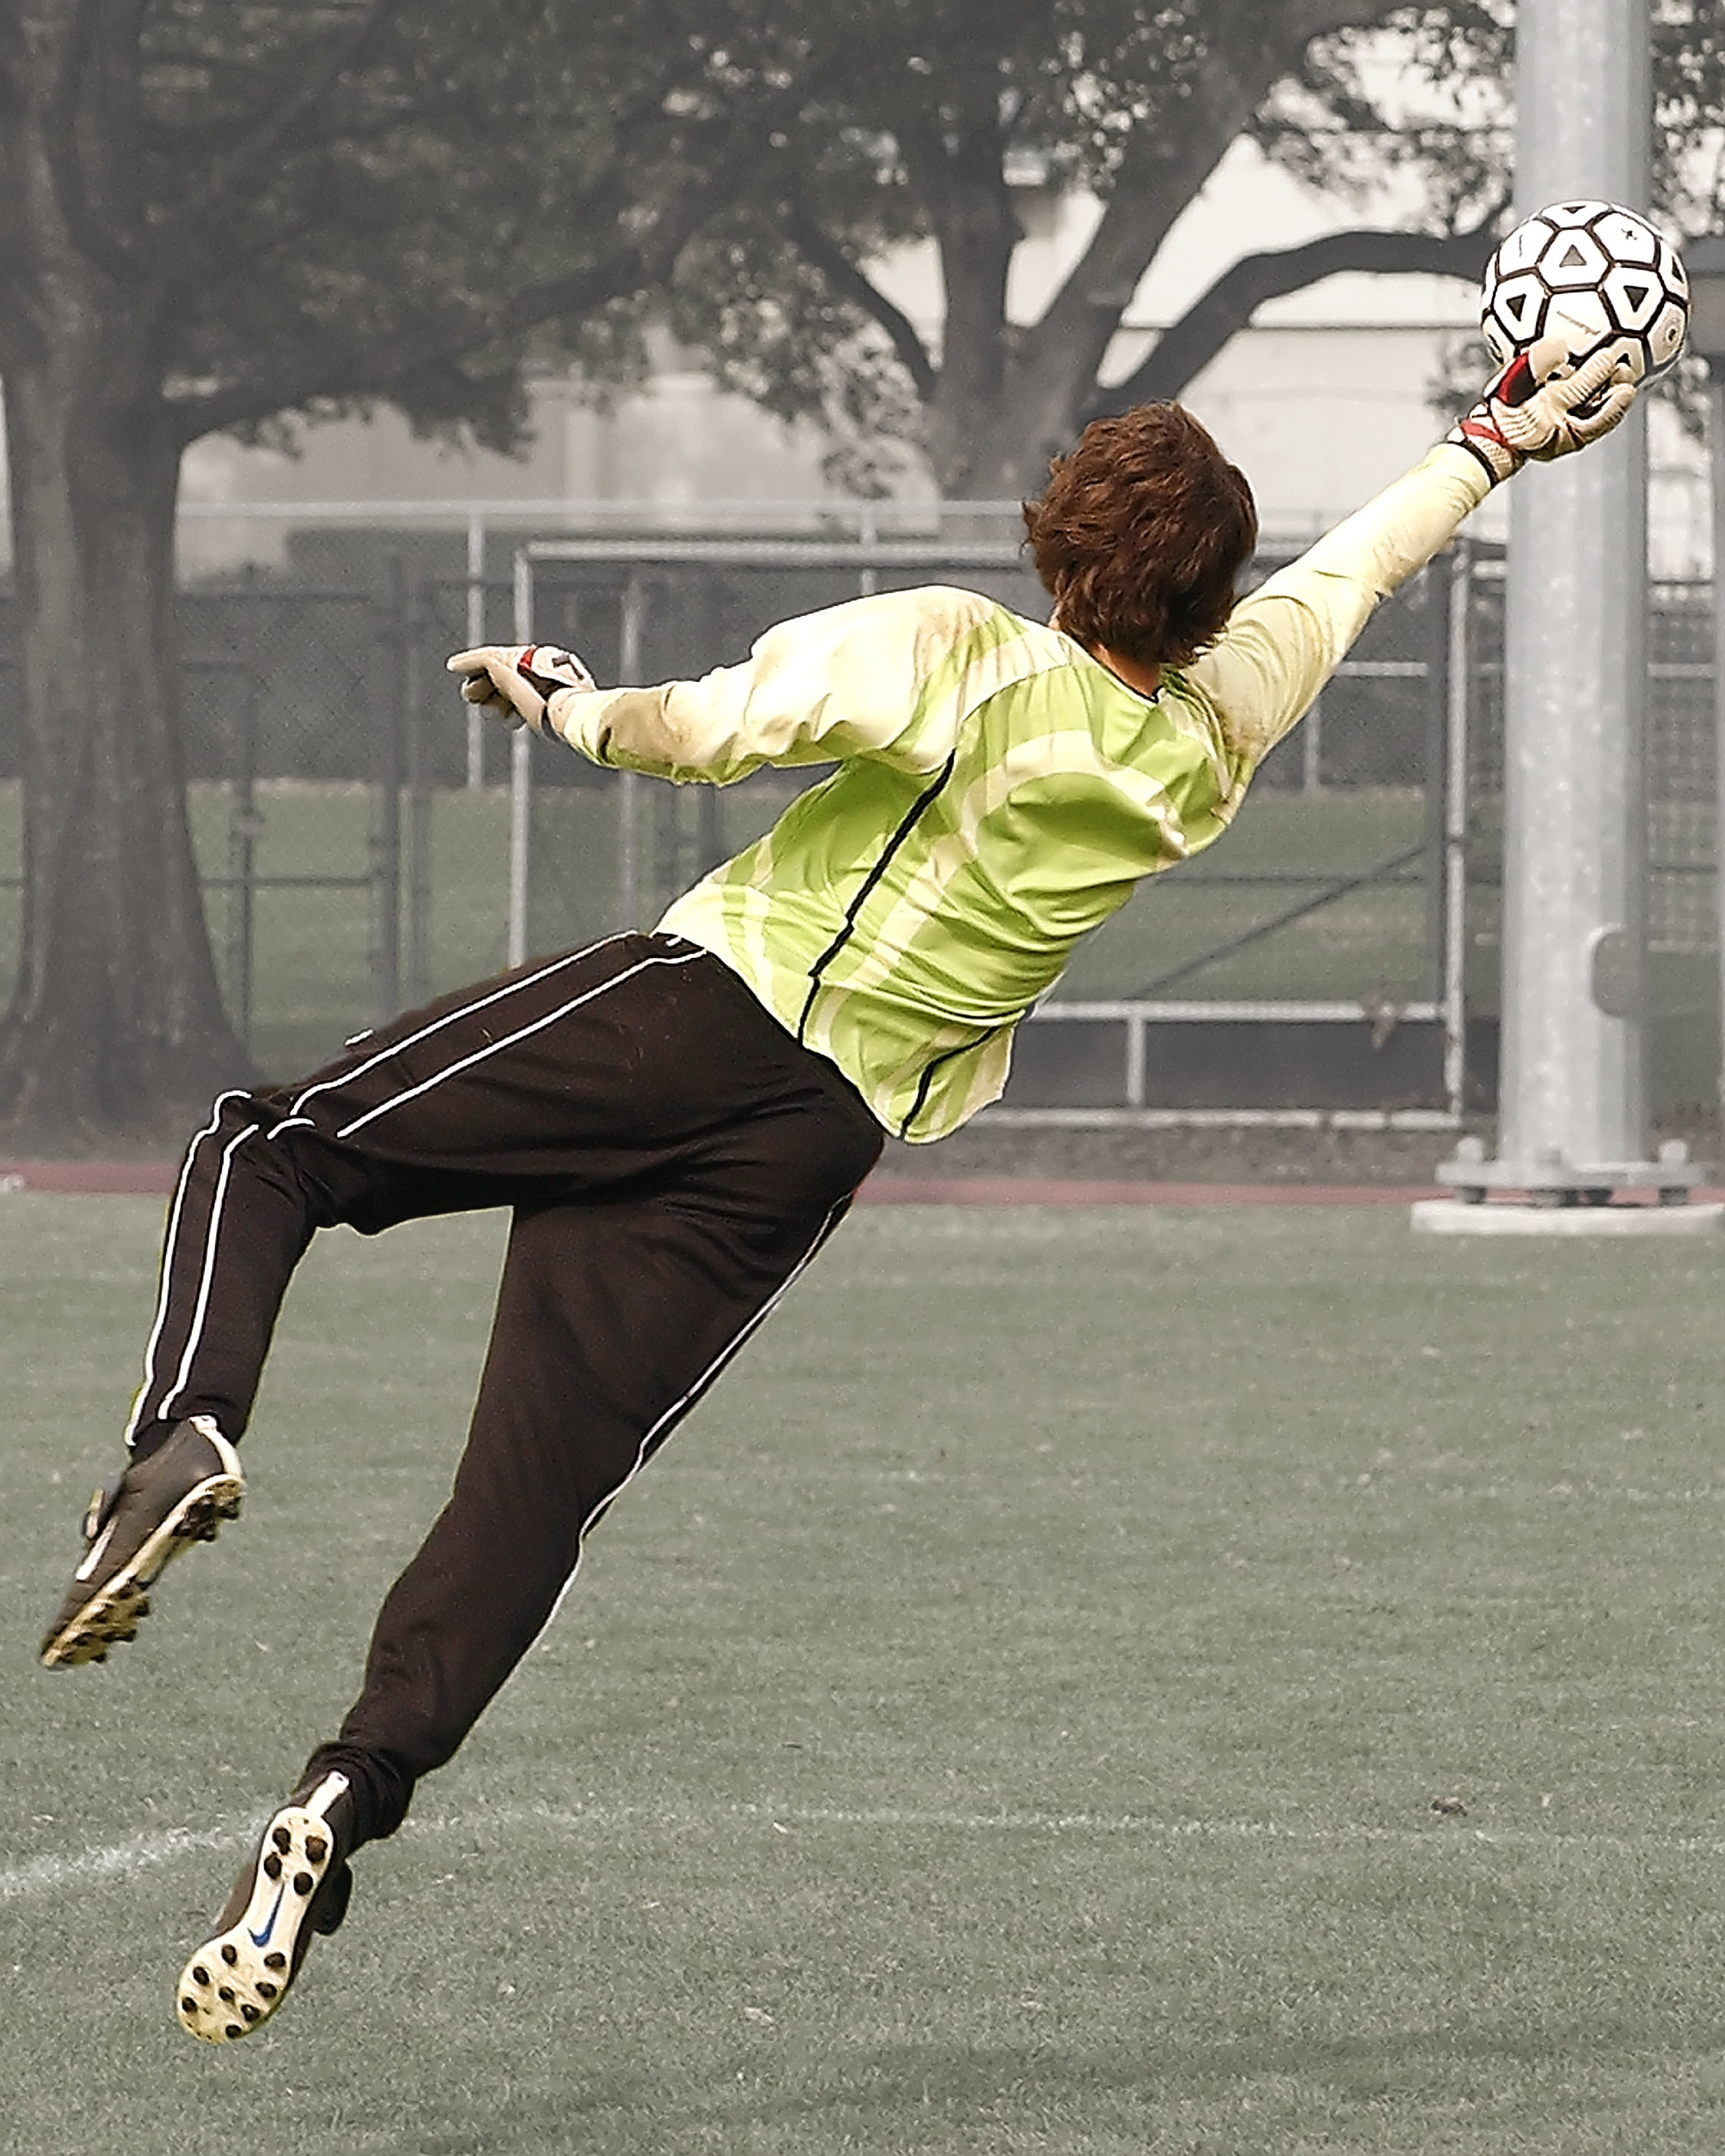 Man in Black Pants Playing Soccer during Daytime · Free ...